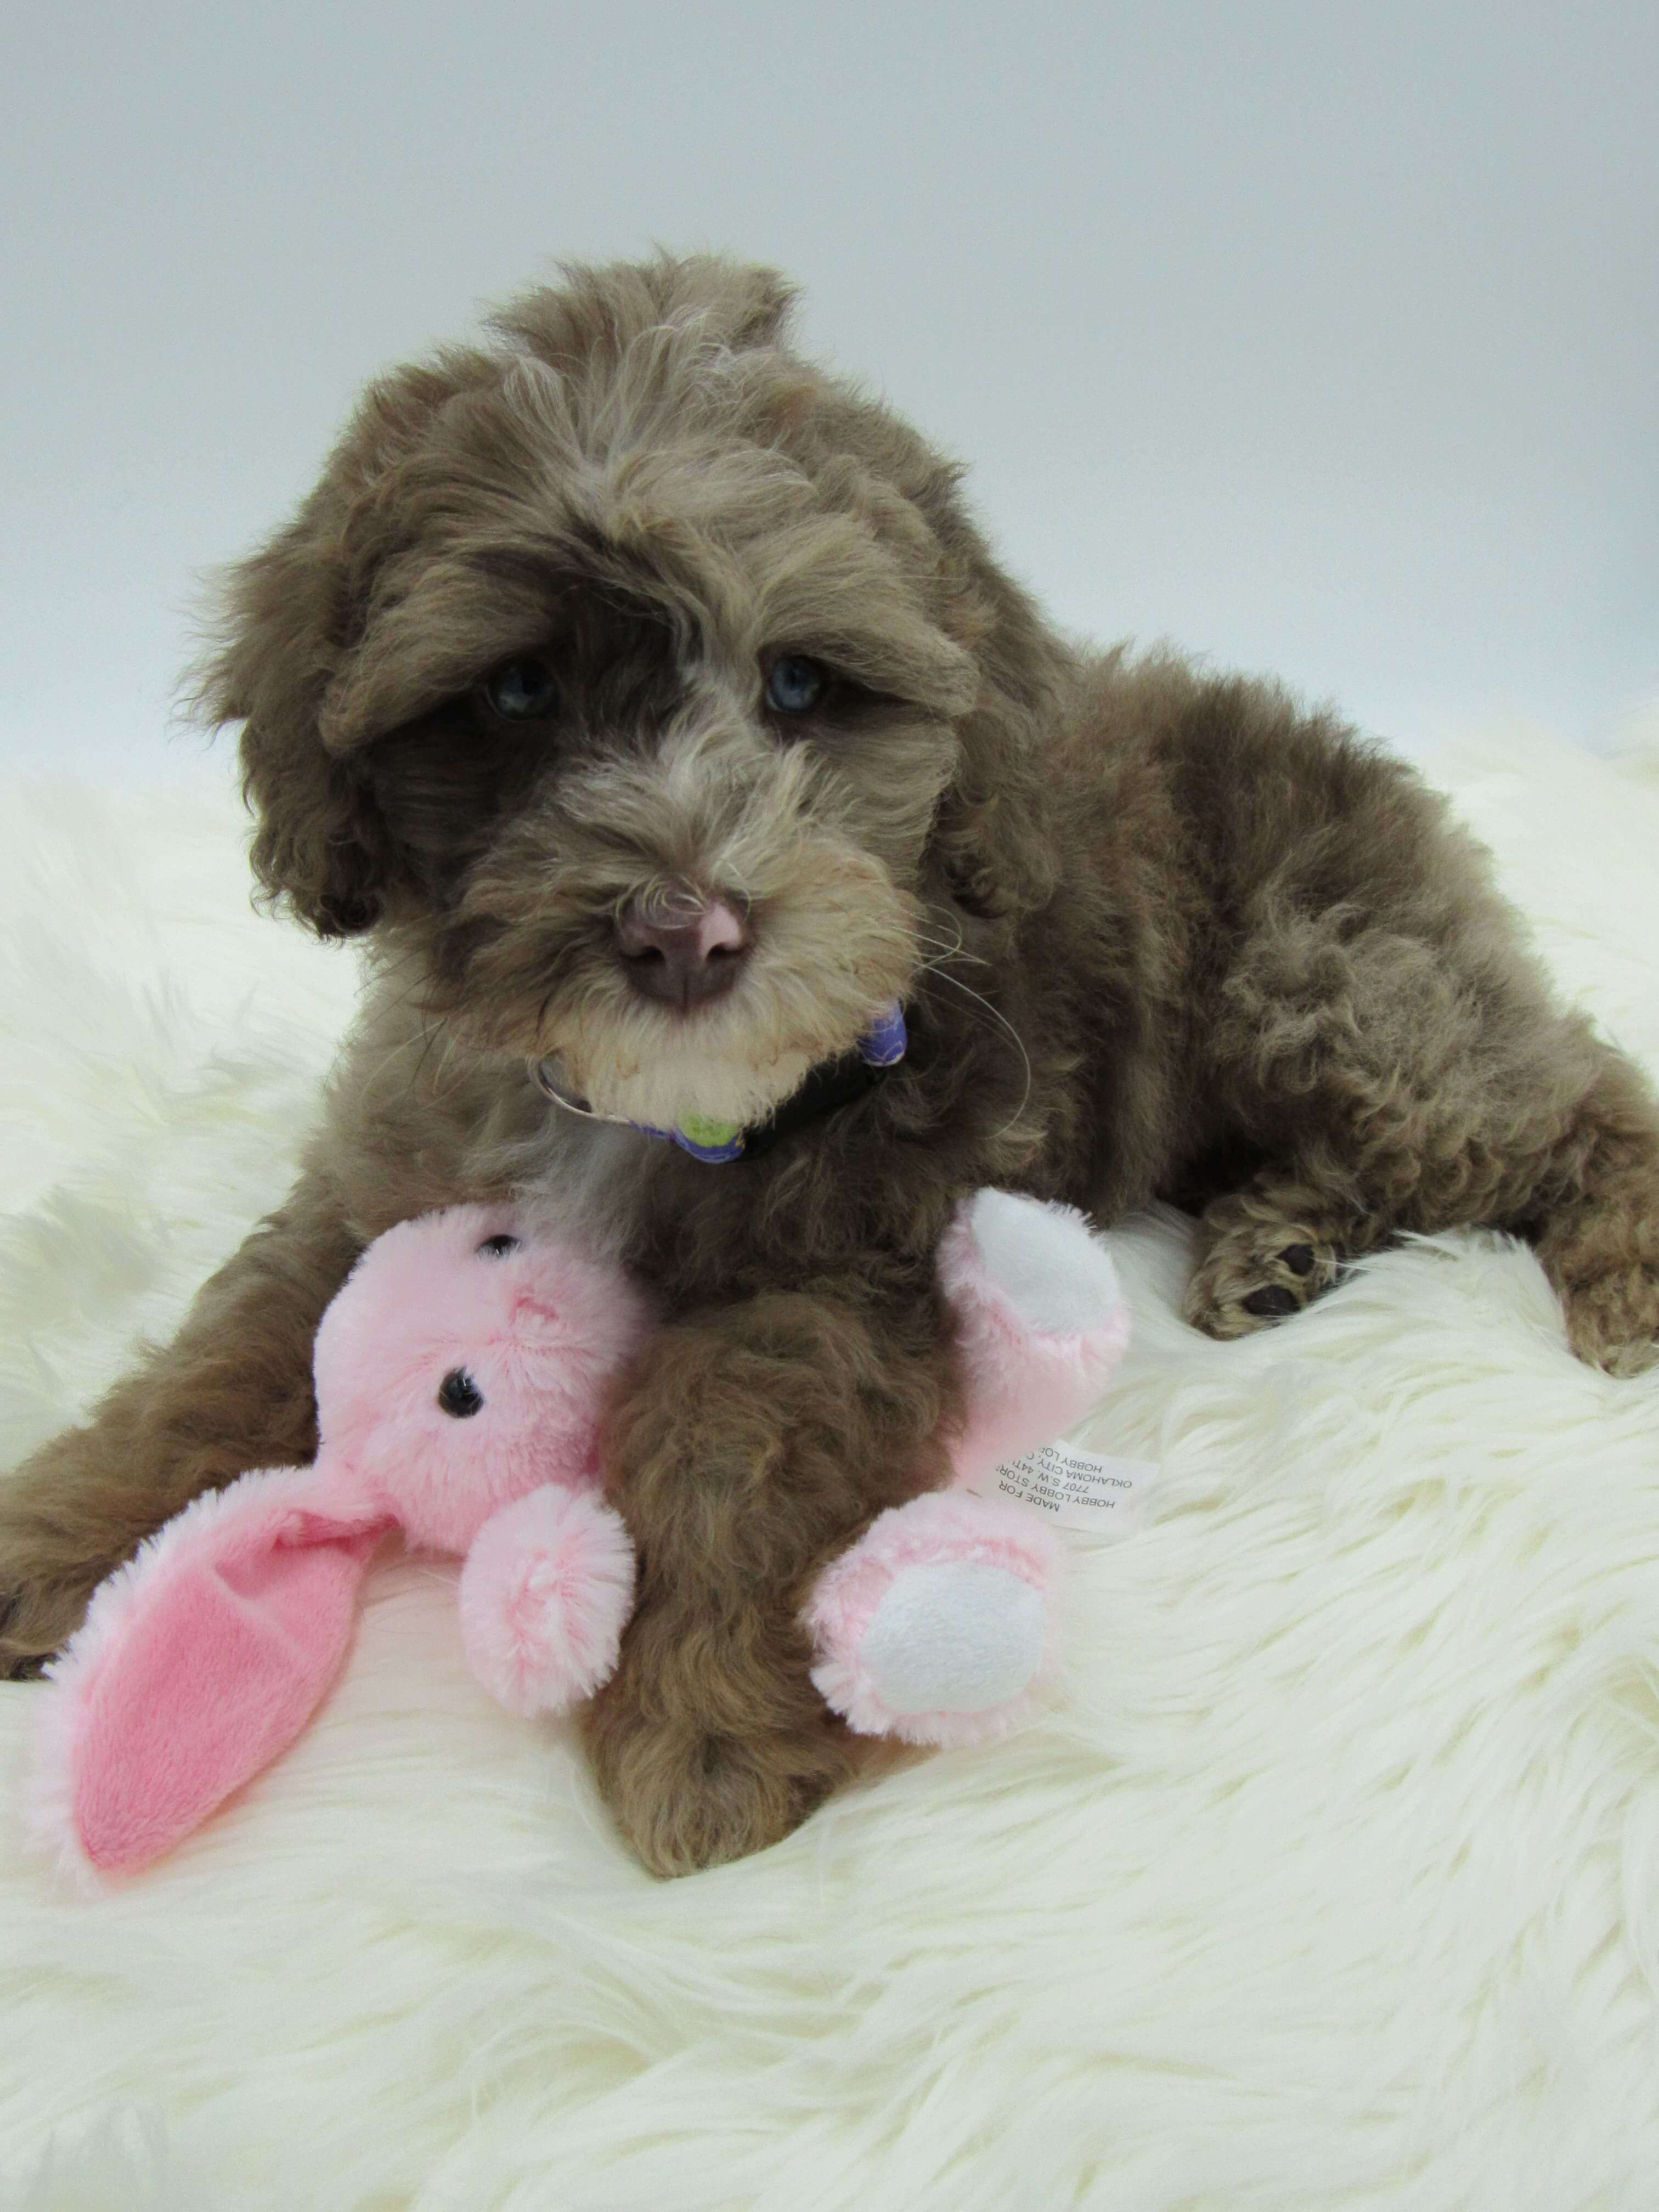 Lucy as a puppy with a stuffed bunny